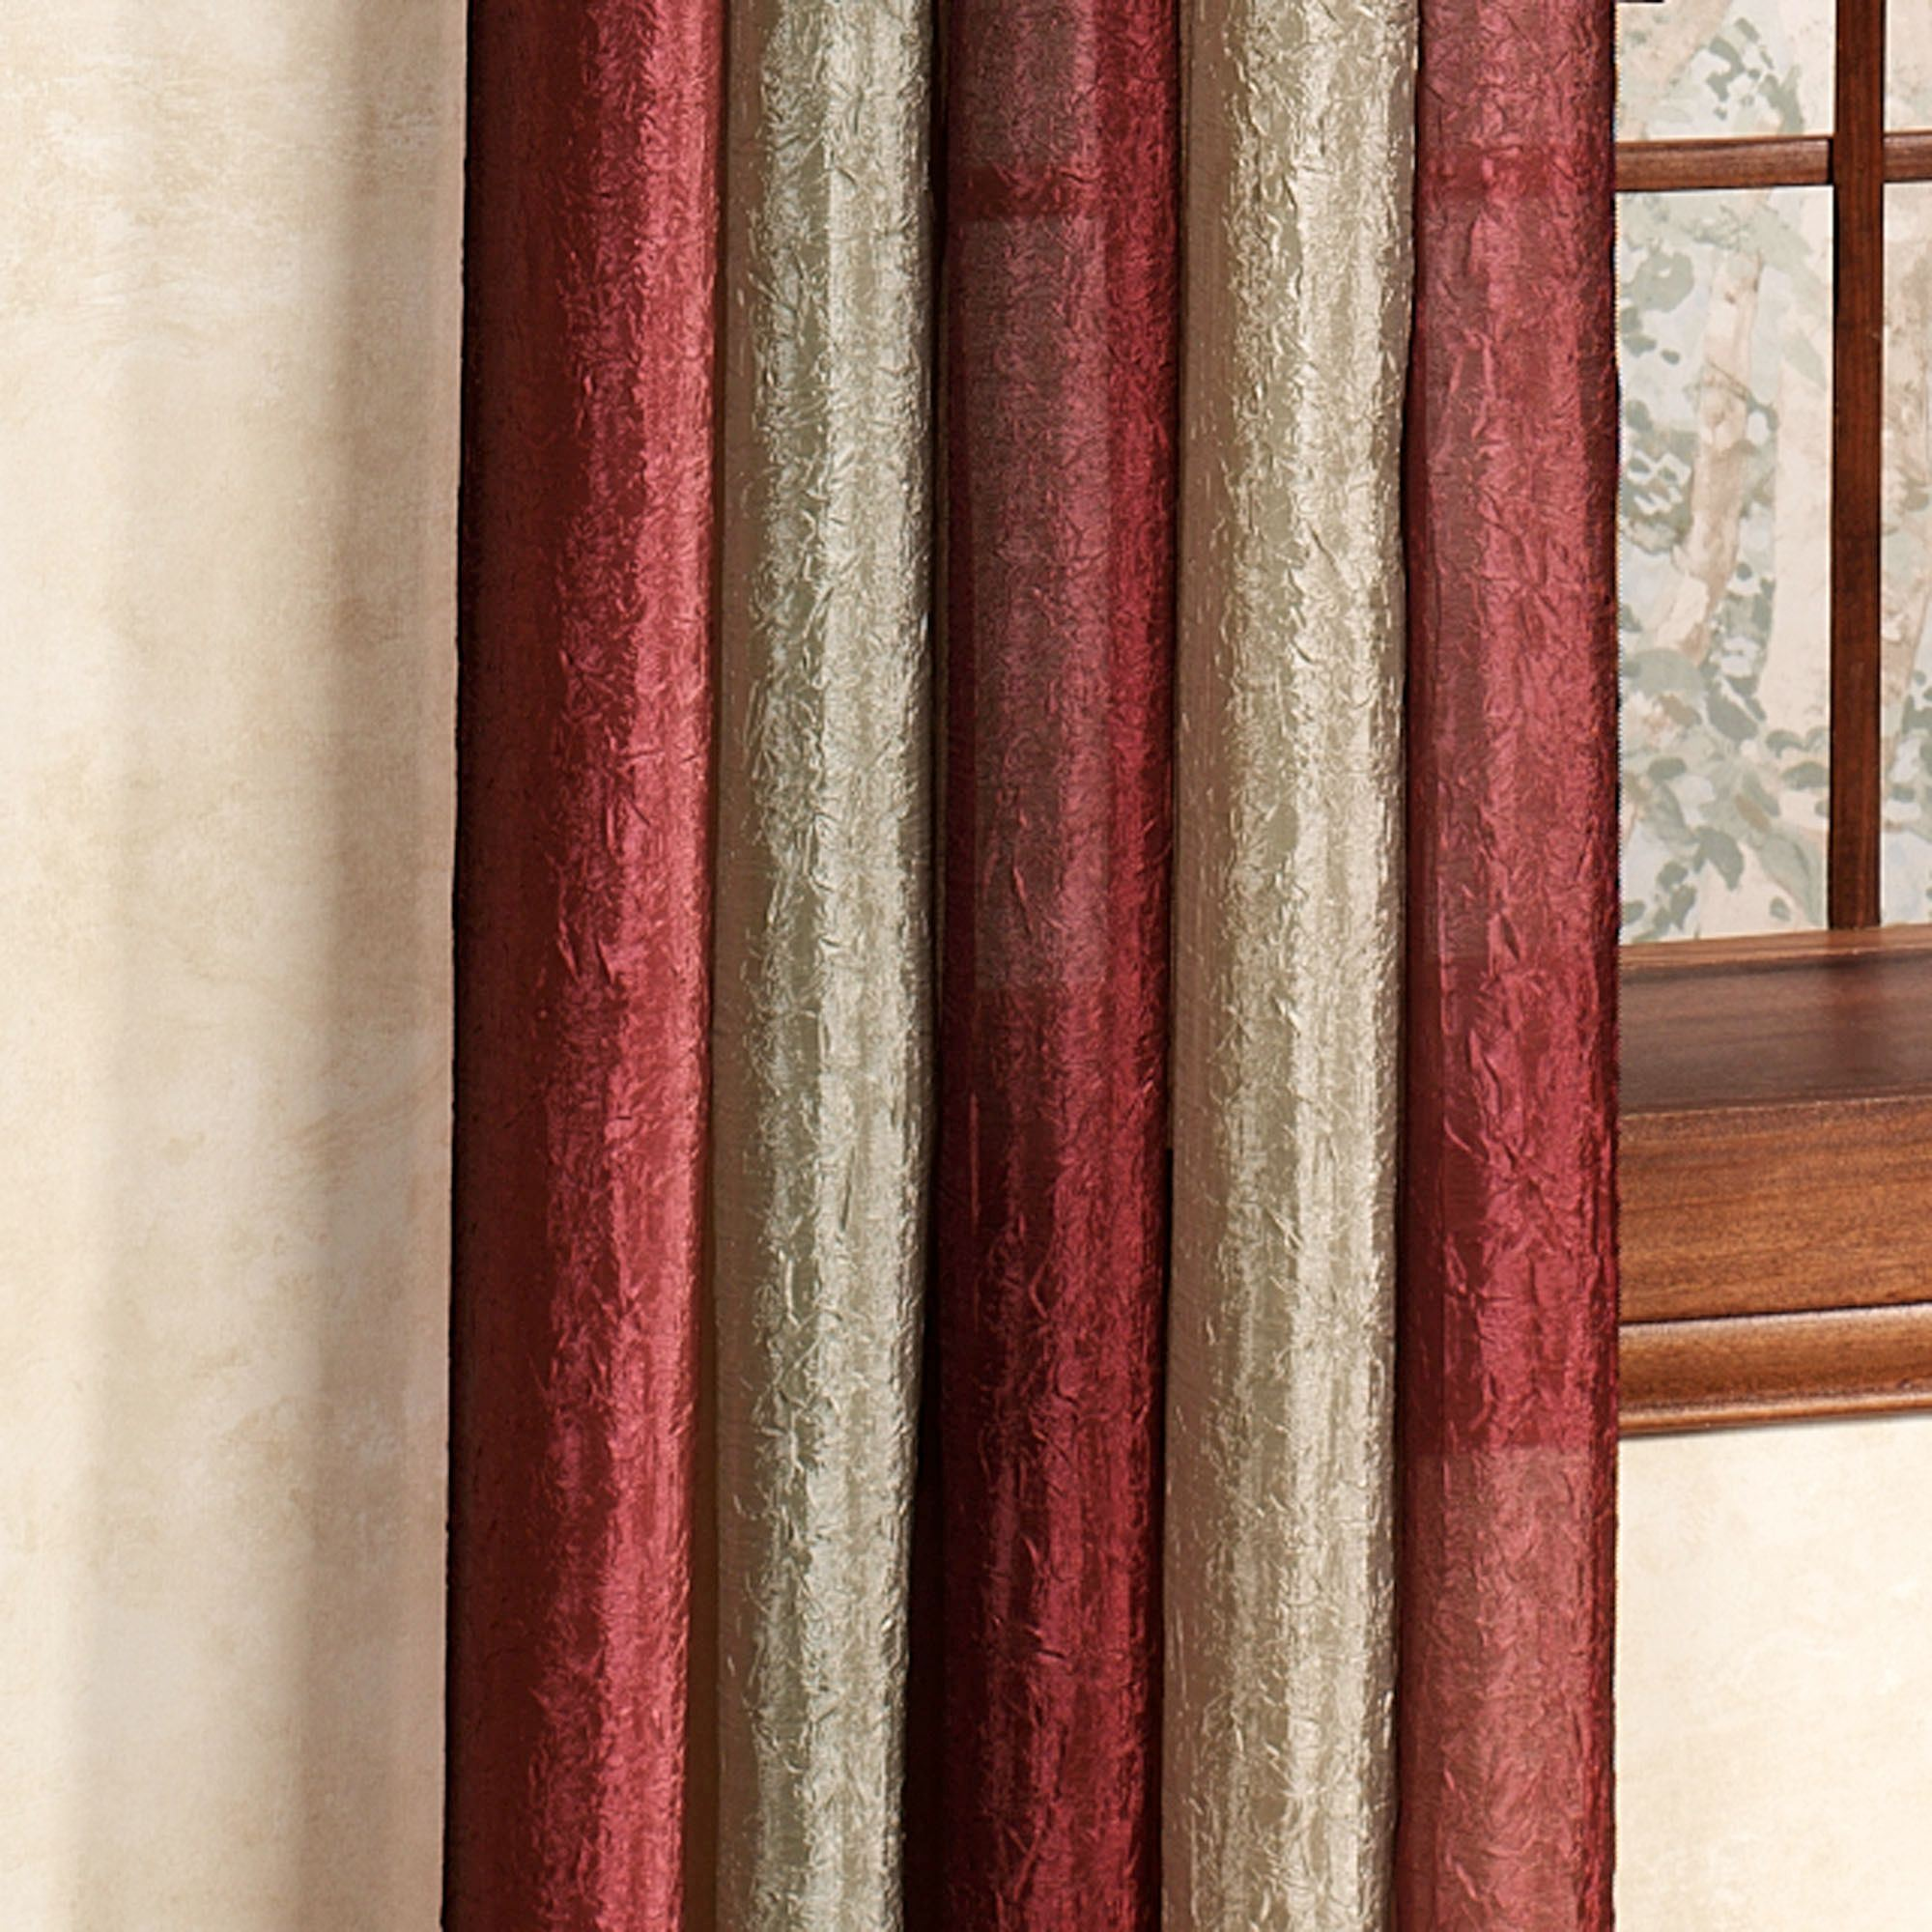 window ideas curtains valance no rustic country cotton curtain p treatment cottonno